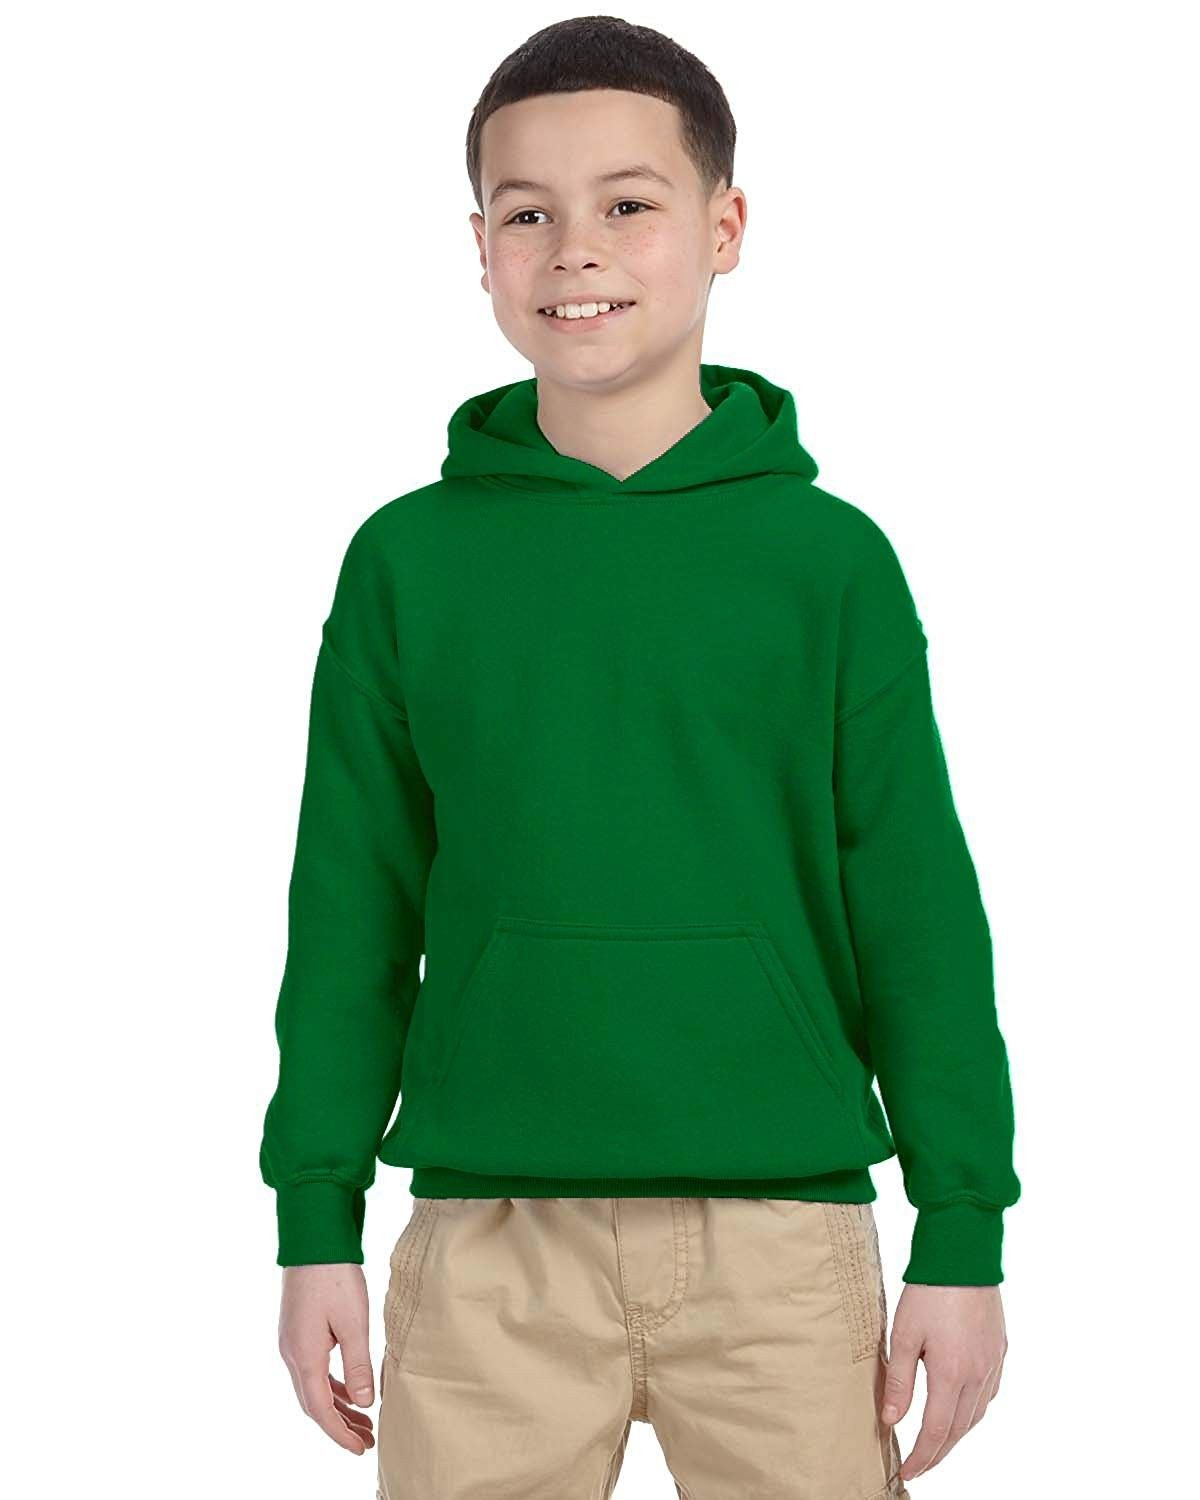 Youth Yeet Kids Hoodie Kelly Green Ck18i4yt4kh Boys Clothes Online Cute Outfits For Kids Kids Hoodie [ 1500 x 1200 Pixel ]